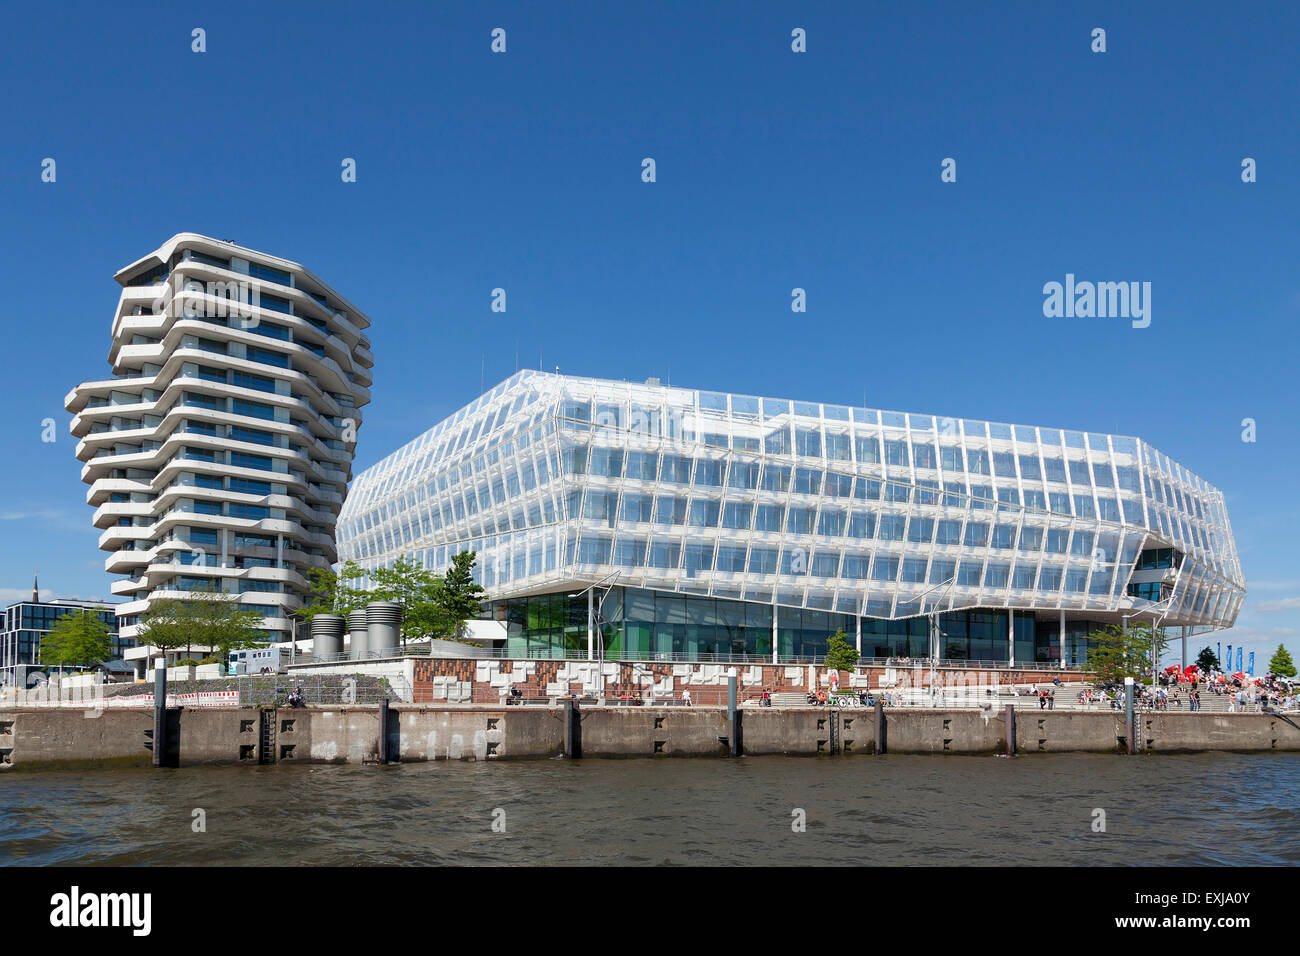 Marco Polo Tower, Unilever House, Harbour City, Hamburg, Germany - Stock Image